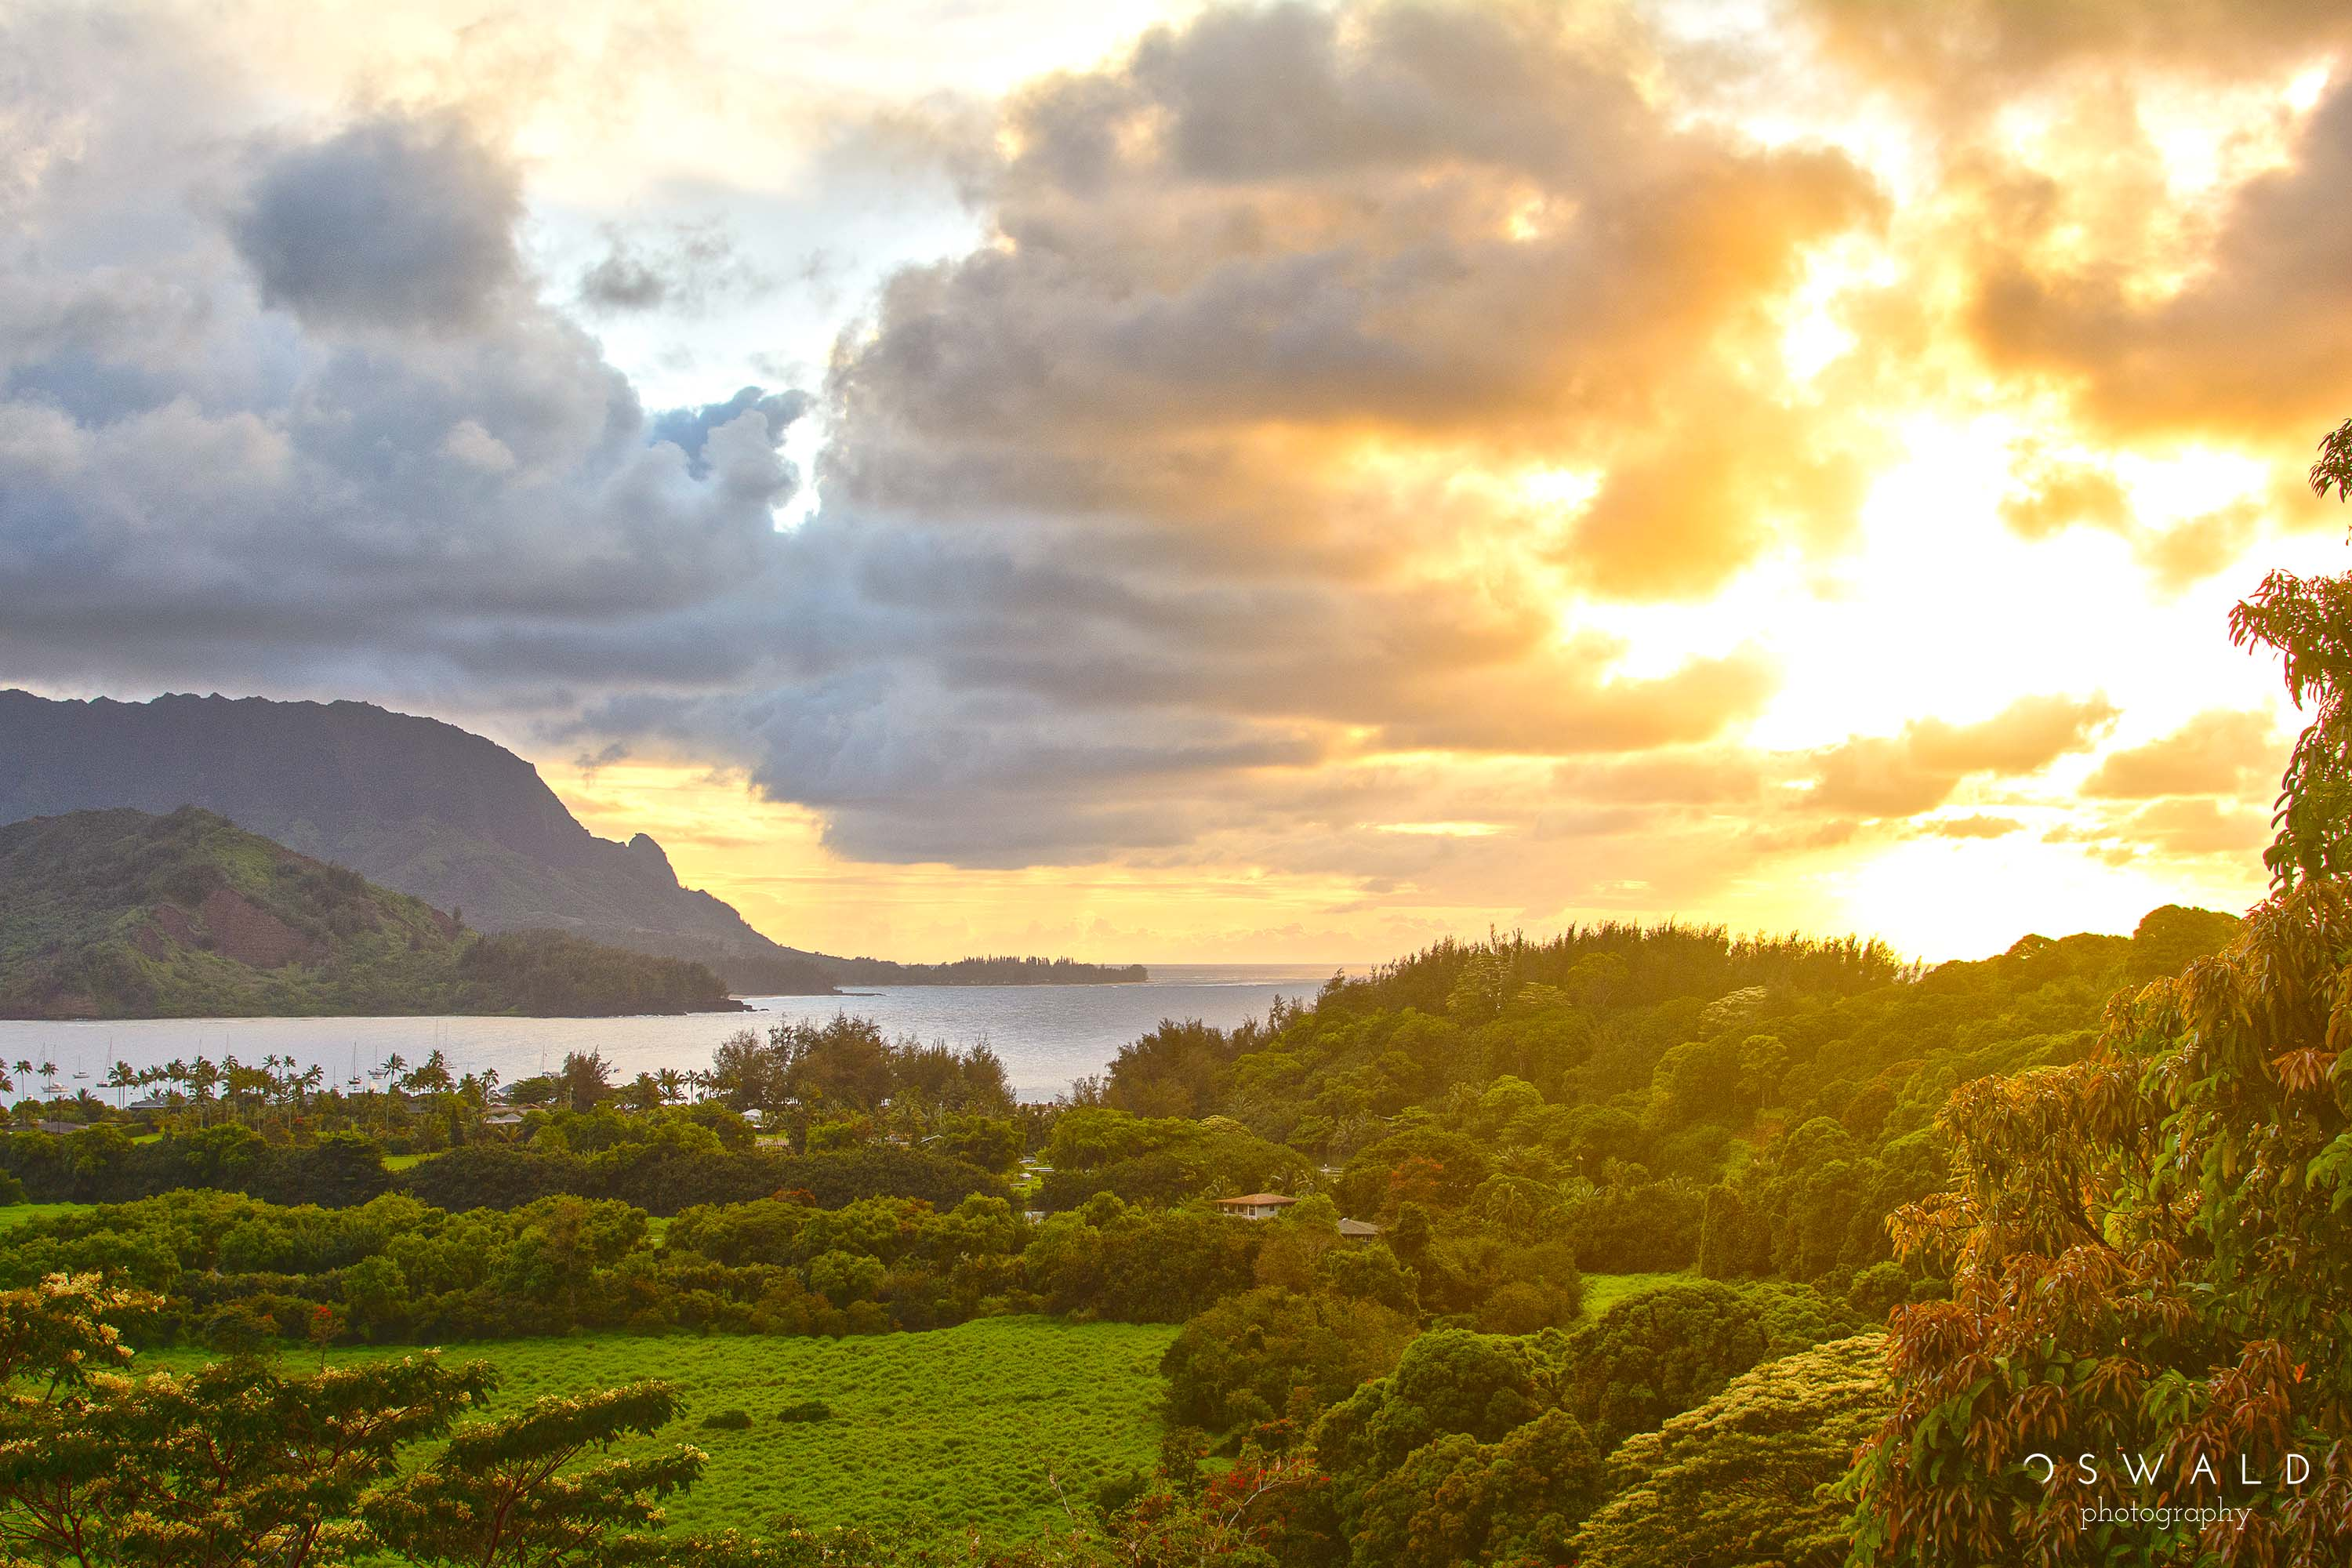 HDR landscape photograph of a dramatic and cloudy sunset over Hanalei Bay in Kauai.